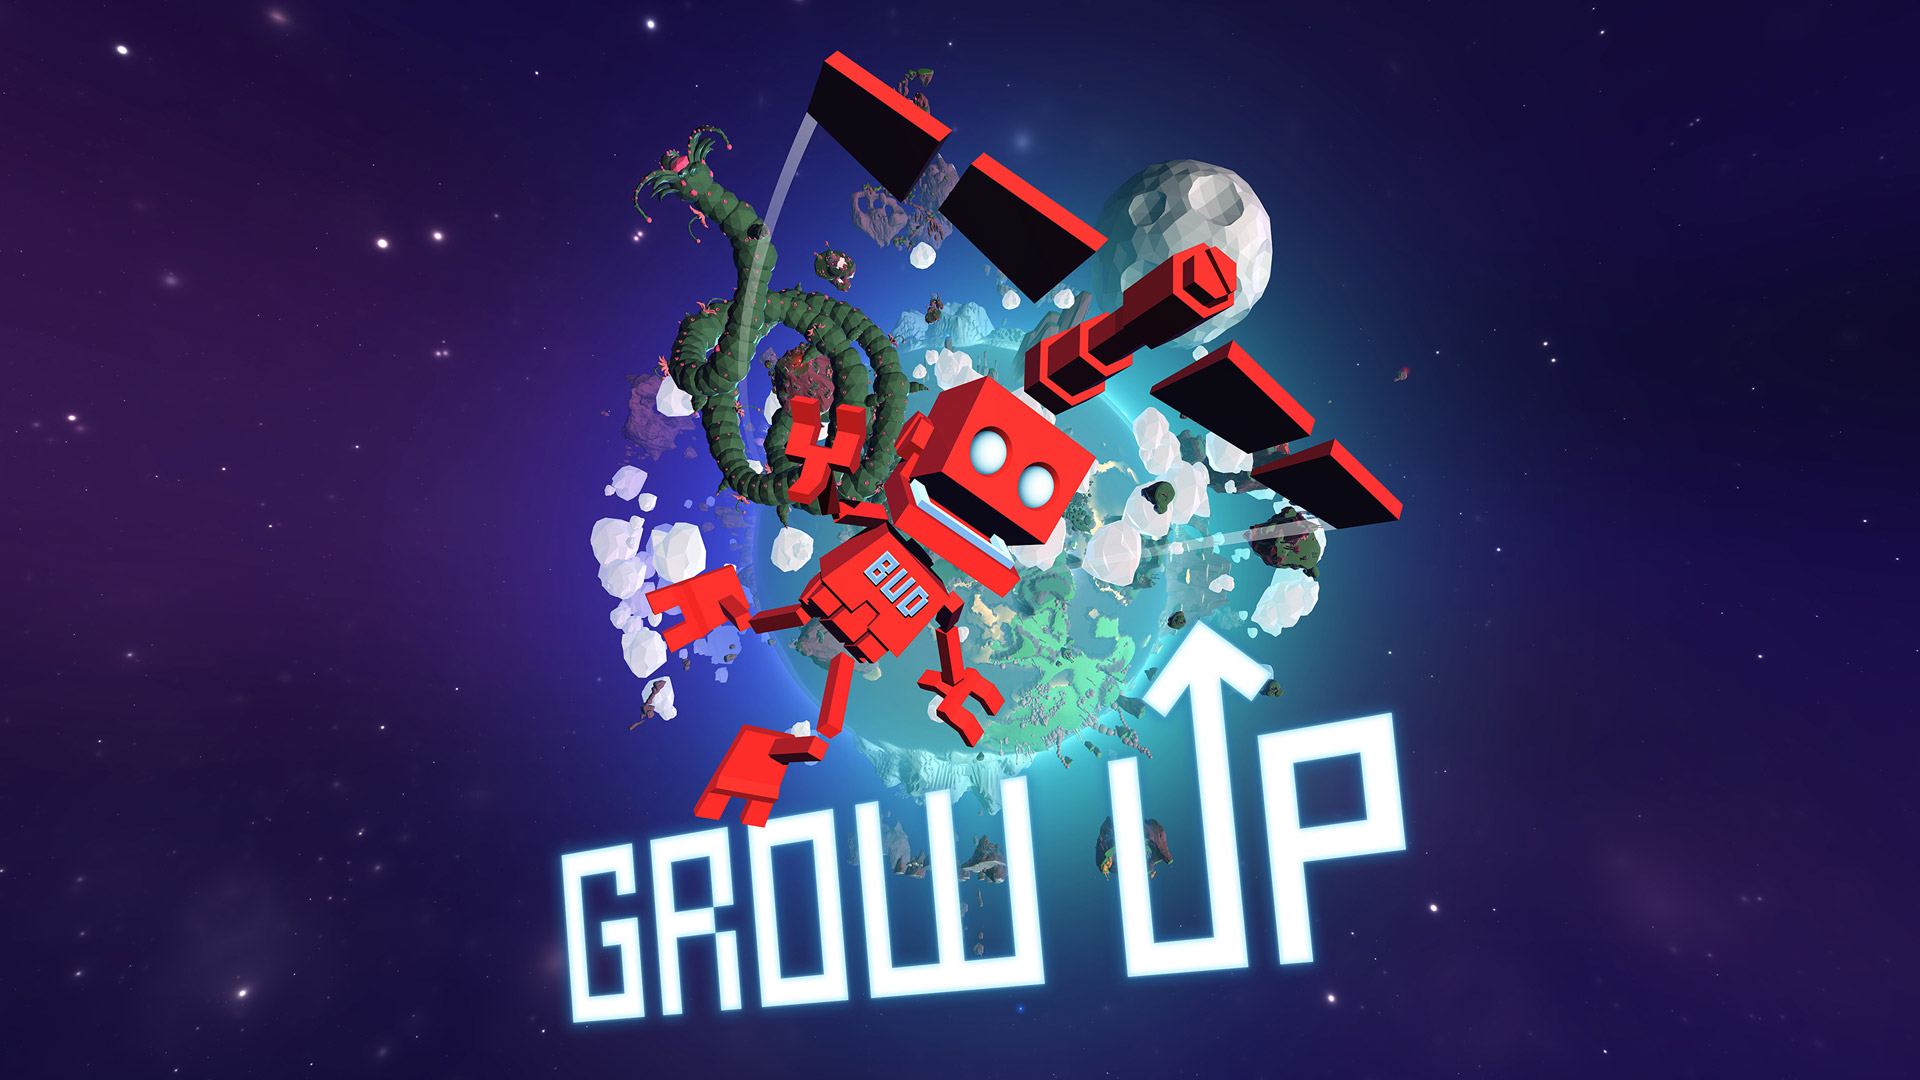 Free Grow Up Wallpaper in 1920x1080